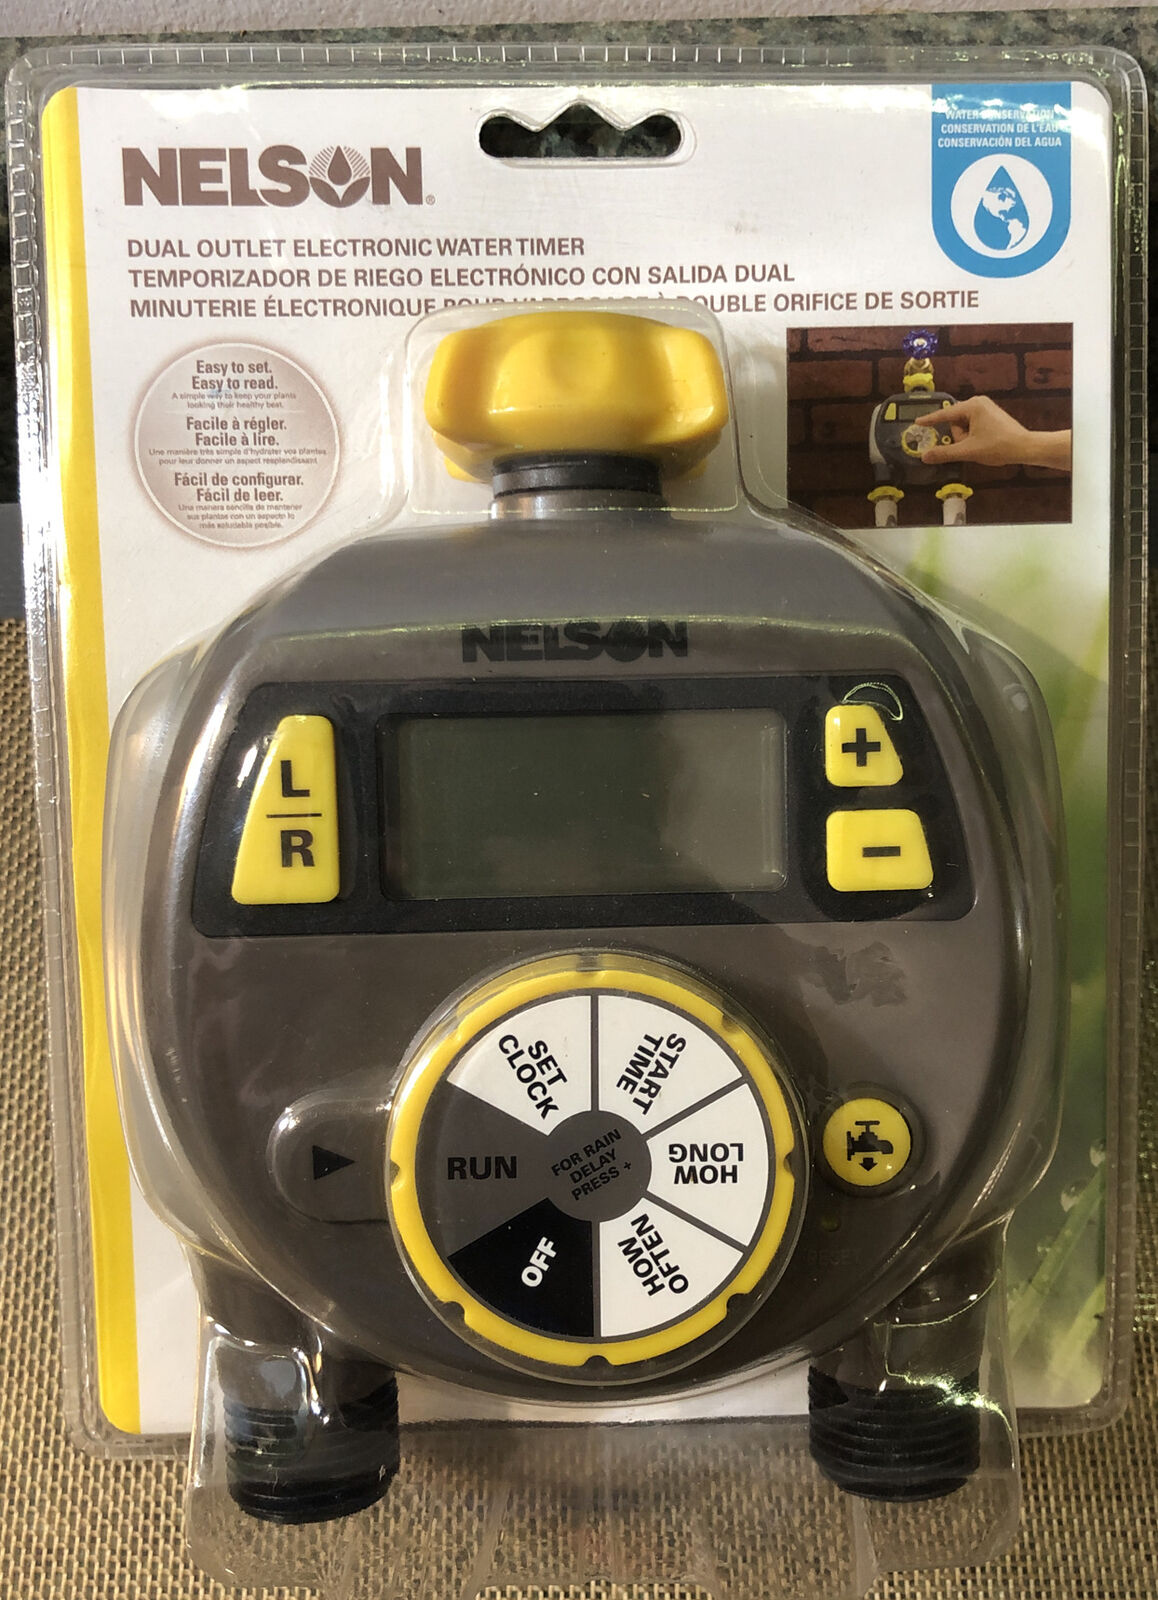 Nelson Dual Outlet Electronic Water Timer Brand New (56612) SAME DAY SHIPPING!!